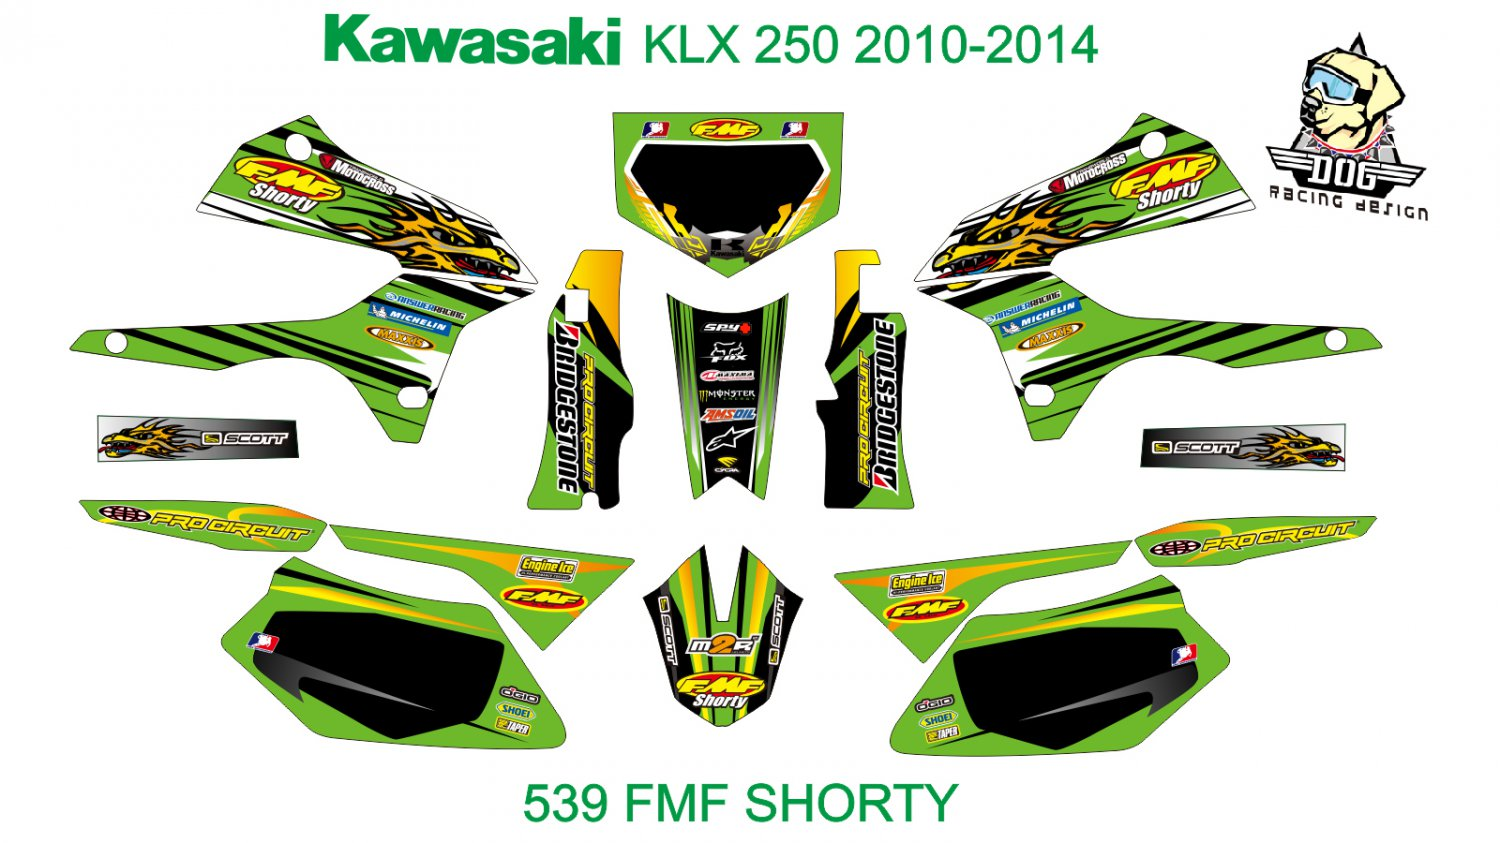 KAWASAKI KLX 250 2010-2014 GRAPHIC DECAL KIT CODE.539